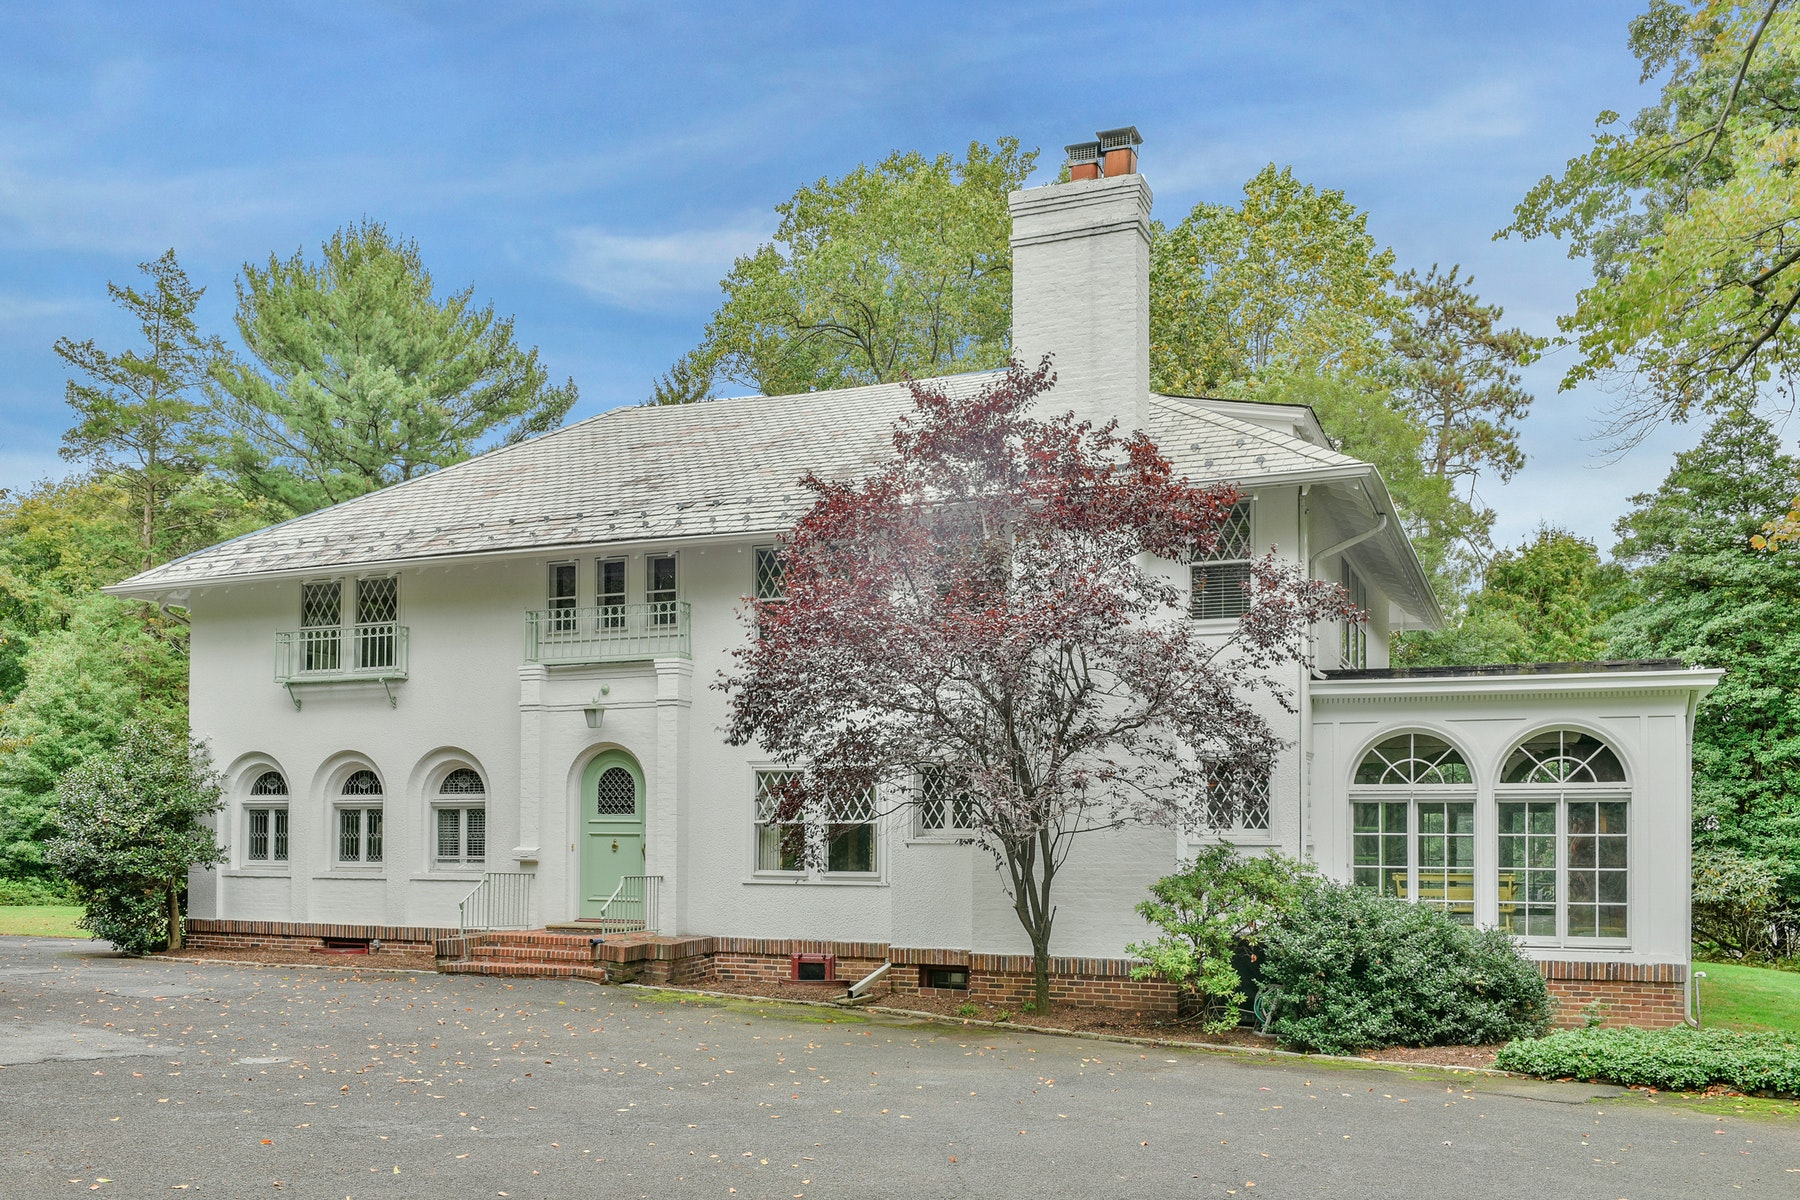 Single Family Home for Sale at Privacy and Serenity 45 Wildwood Avenue, West Orange, New Jersey, 07052 United States